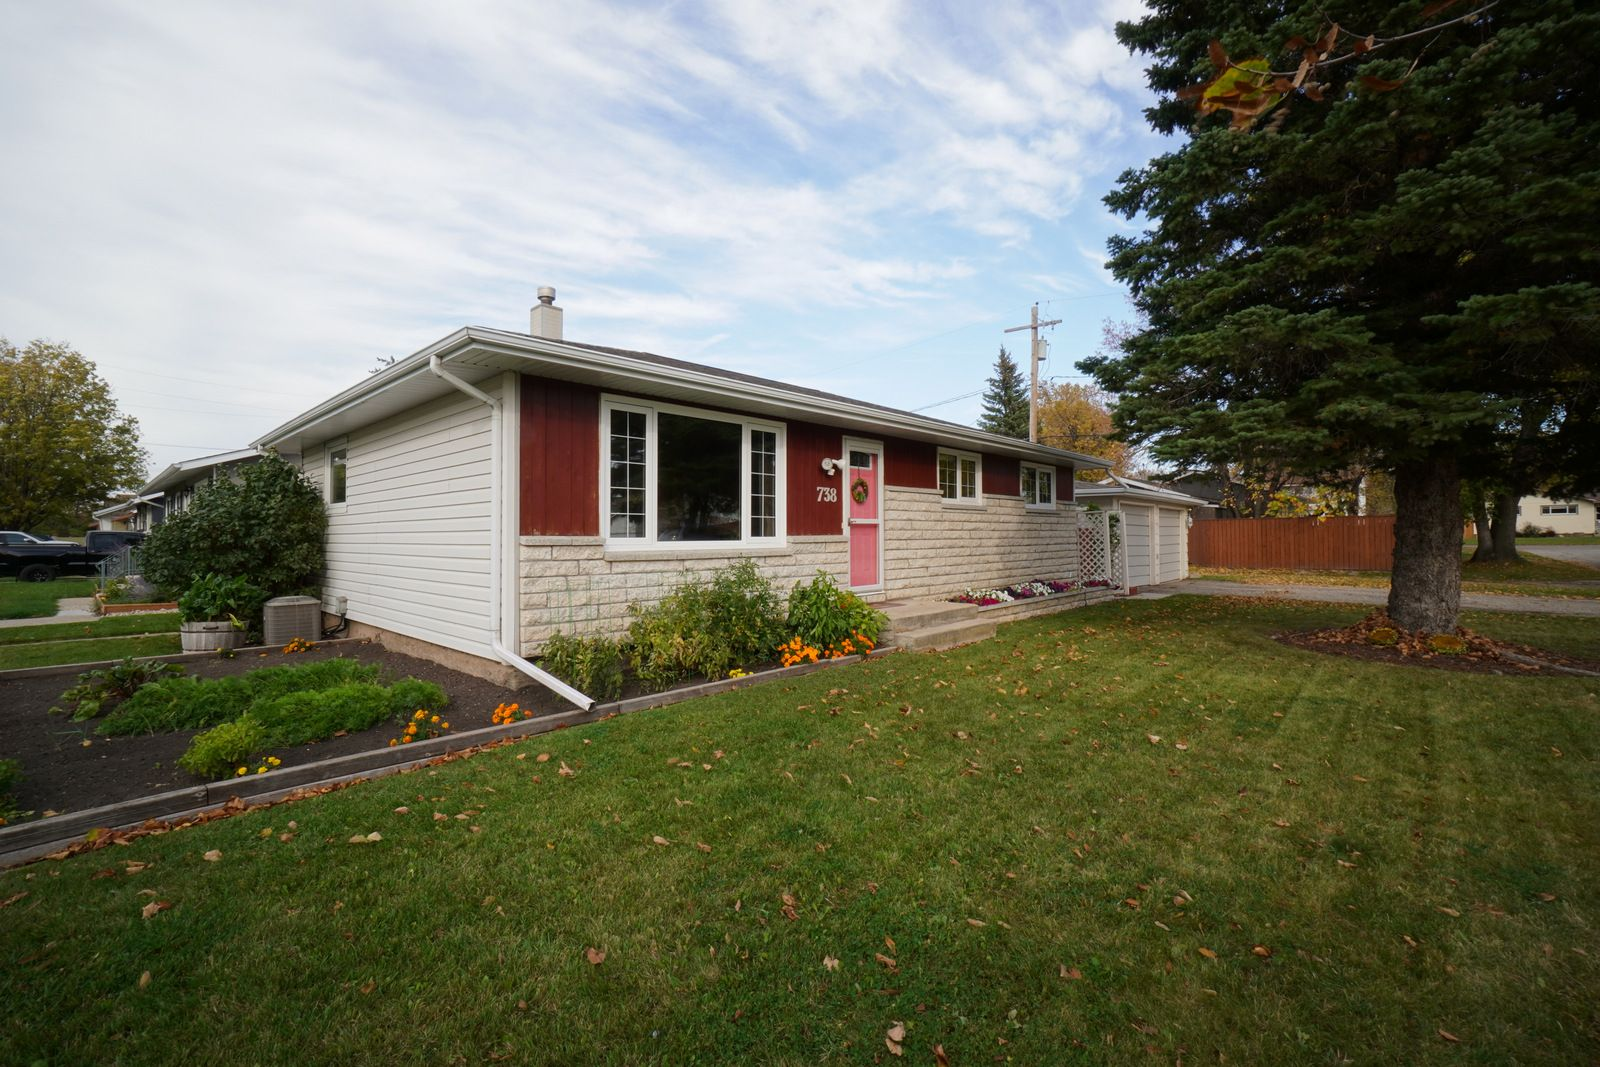 Main Photo: 738 4th St NW in Portage la Prairie: House for sale : MLS®# 202124462